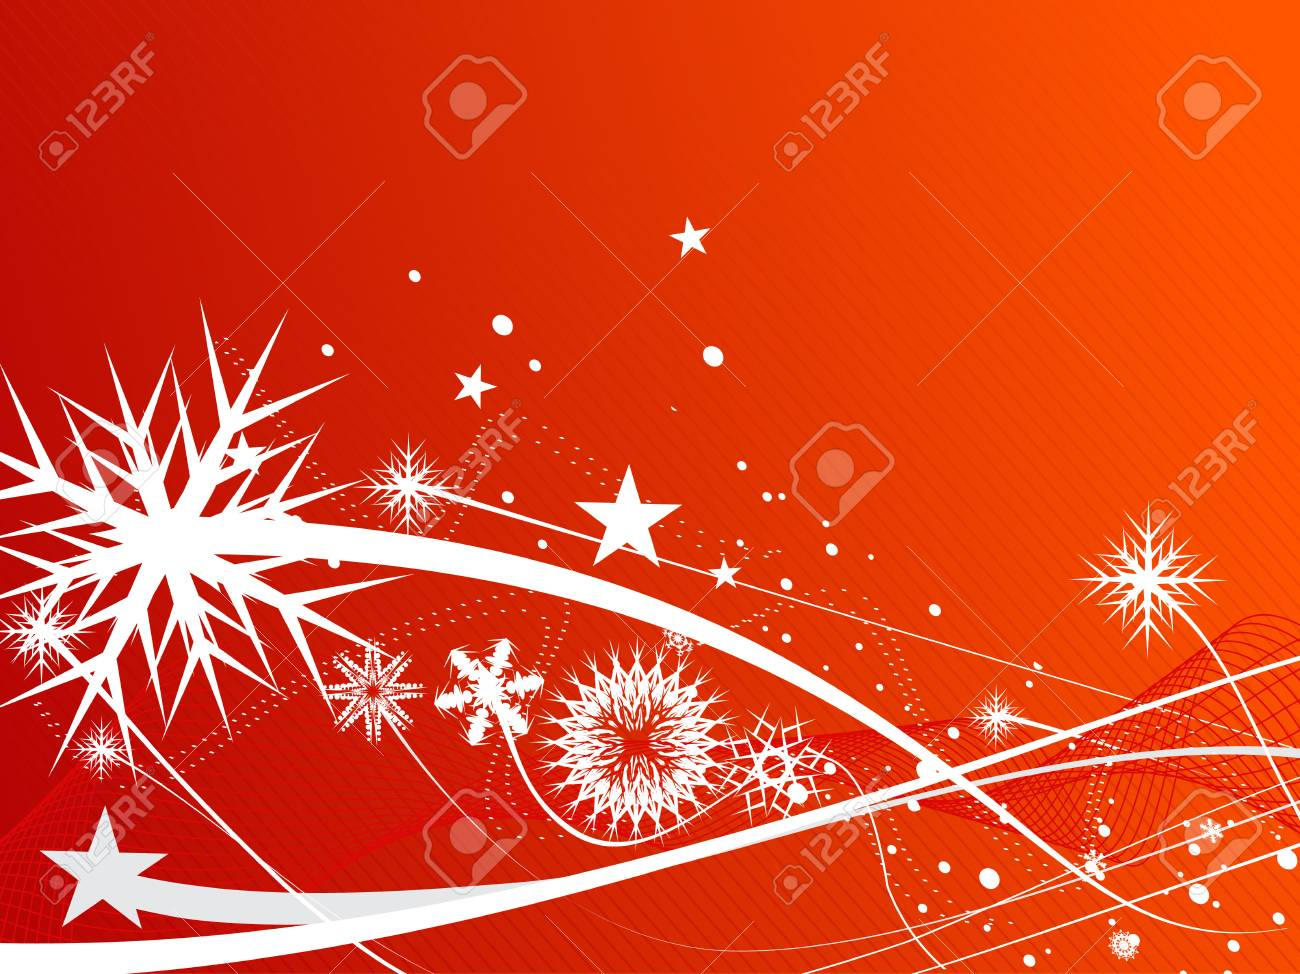 Abstract christmas snow on red background, vector illustration for xmas Stock Vector - 5883853